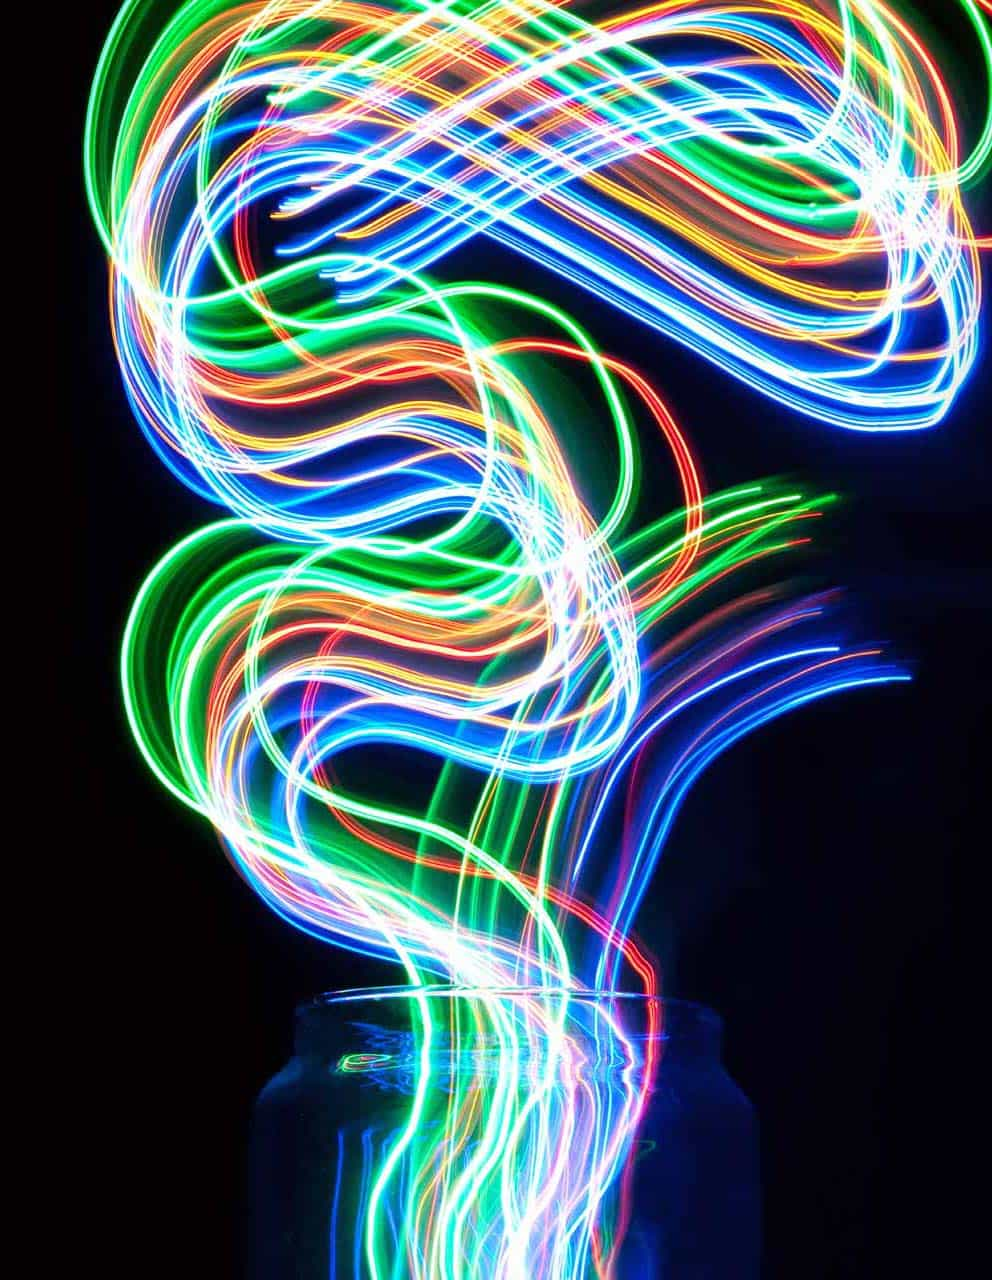 Light painting photograph conceived, created and taken by Piccia Neri for the main image for the Future Film Festival 2011 Film Poster. Photo by Piccia Neri, all rights reserved.